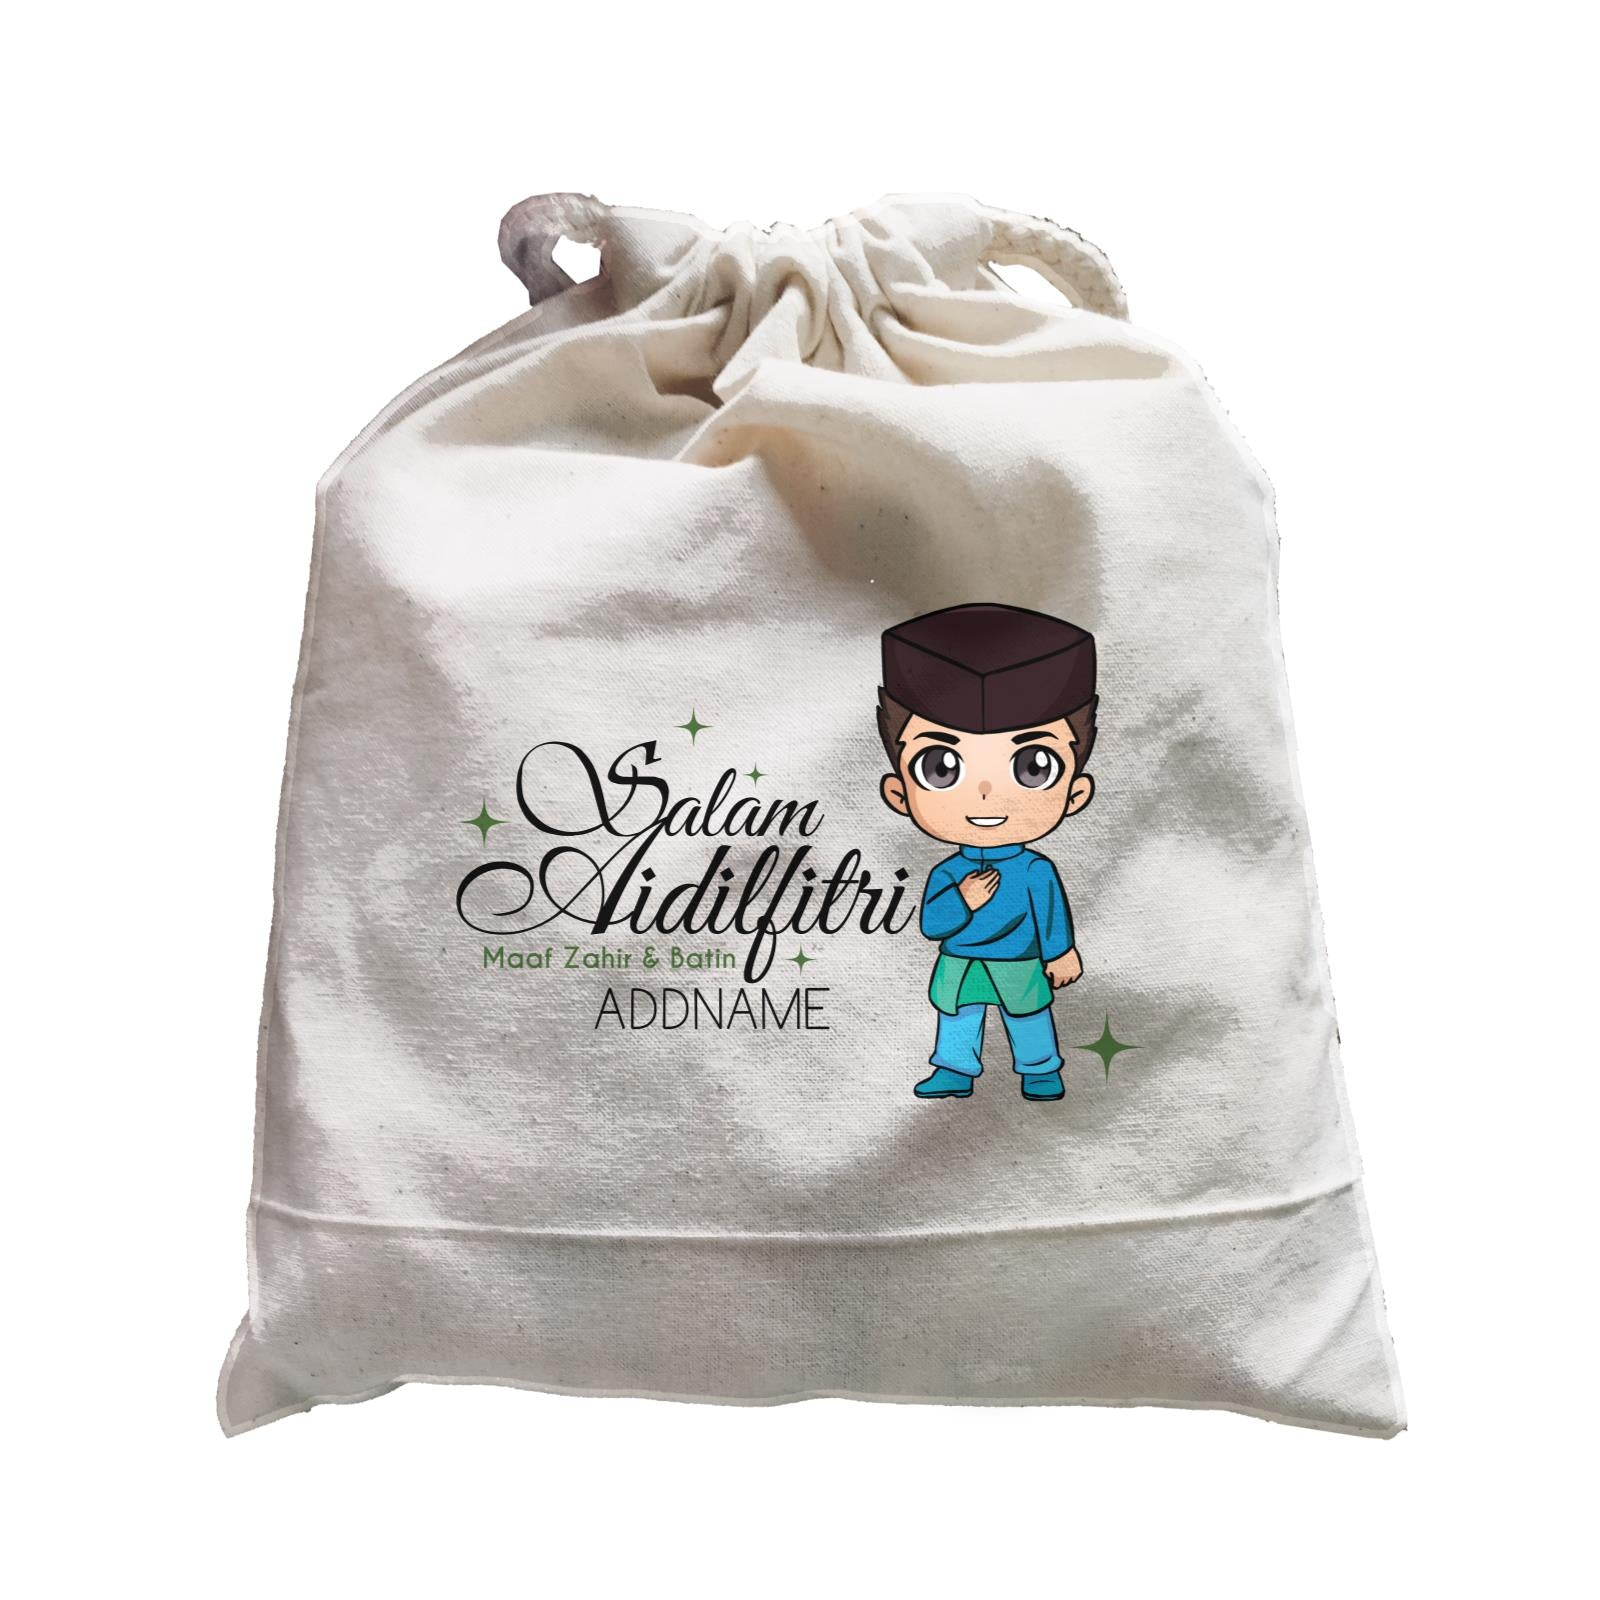 Raya Chibi Wishes Man Addname Wishes Everyone Salam Aidilfitri Maaf Zahir & Batin Accessories Satchel